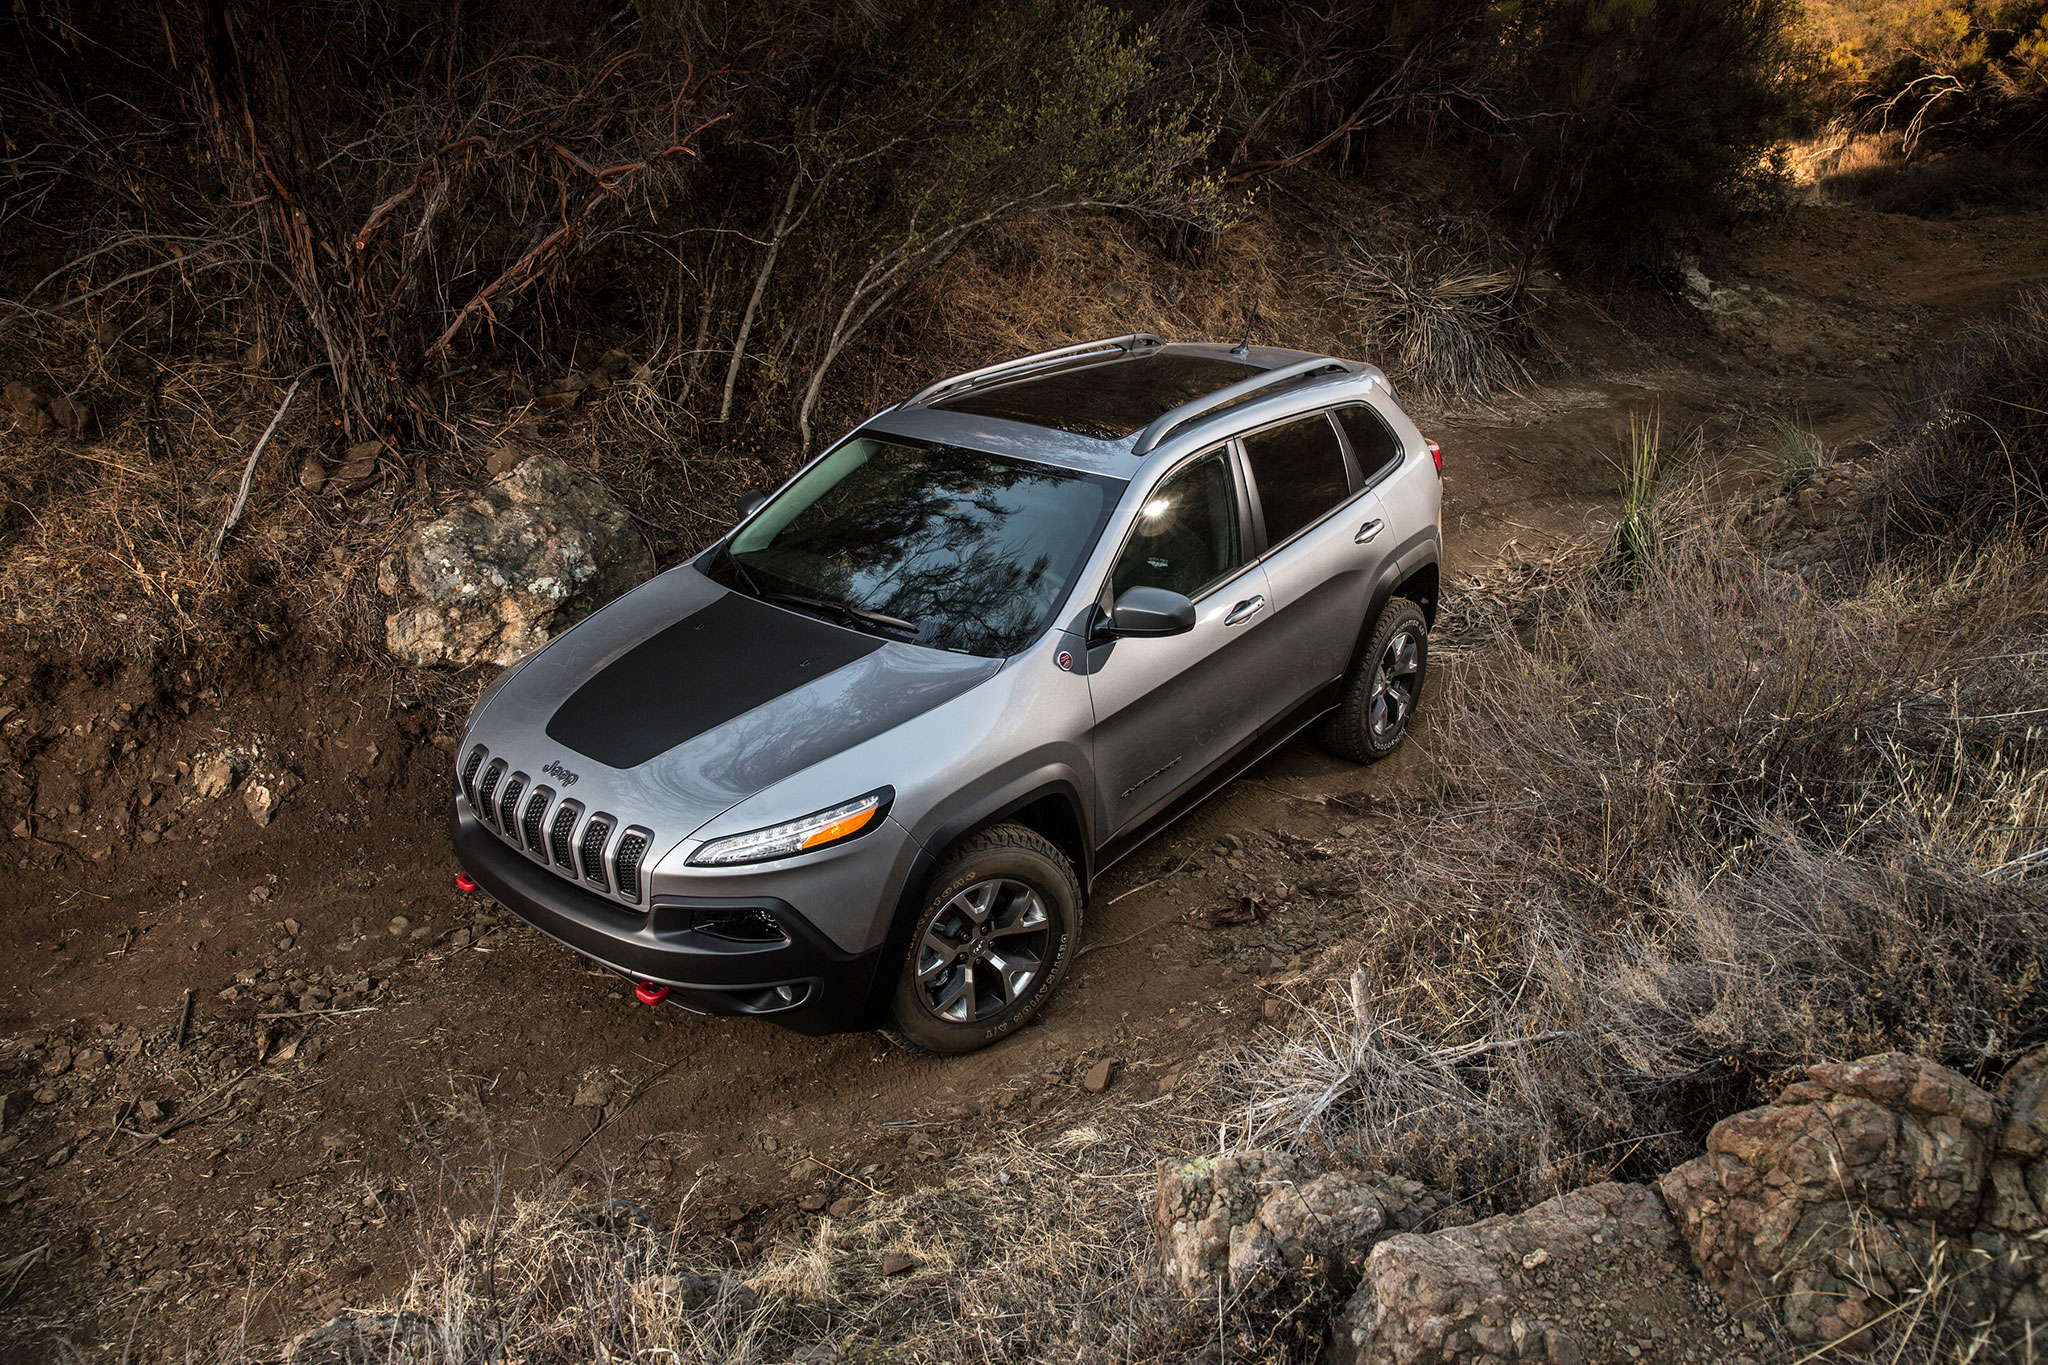 jtbachphotography cherokee jtbach flickr photography my trailhawk by b photos jeep